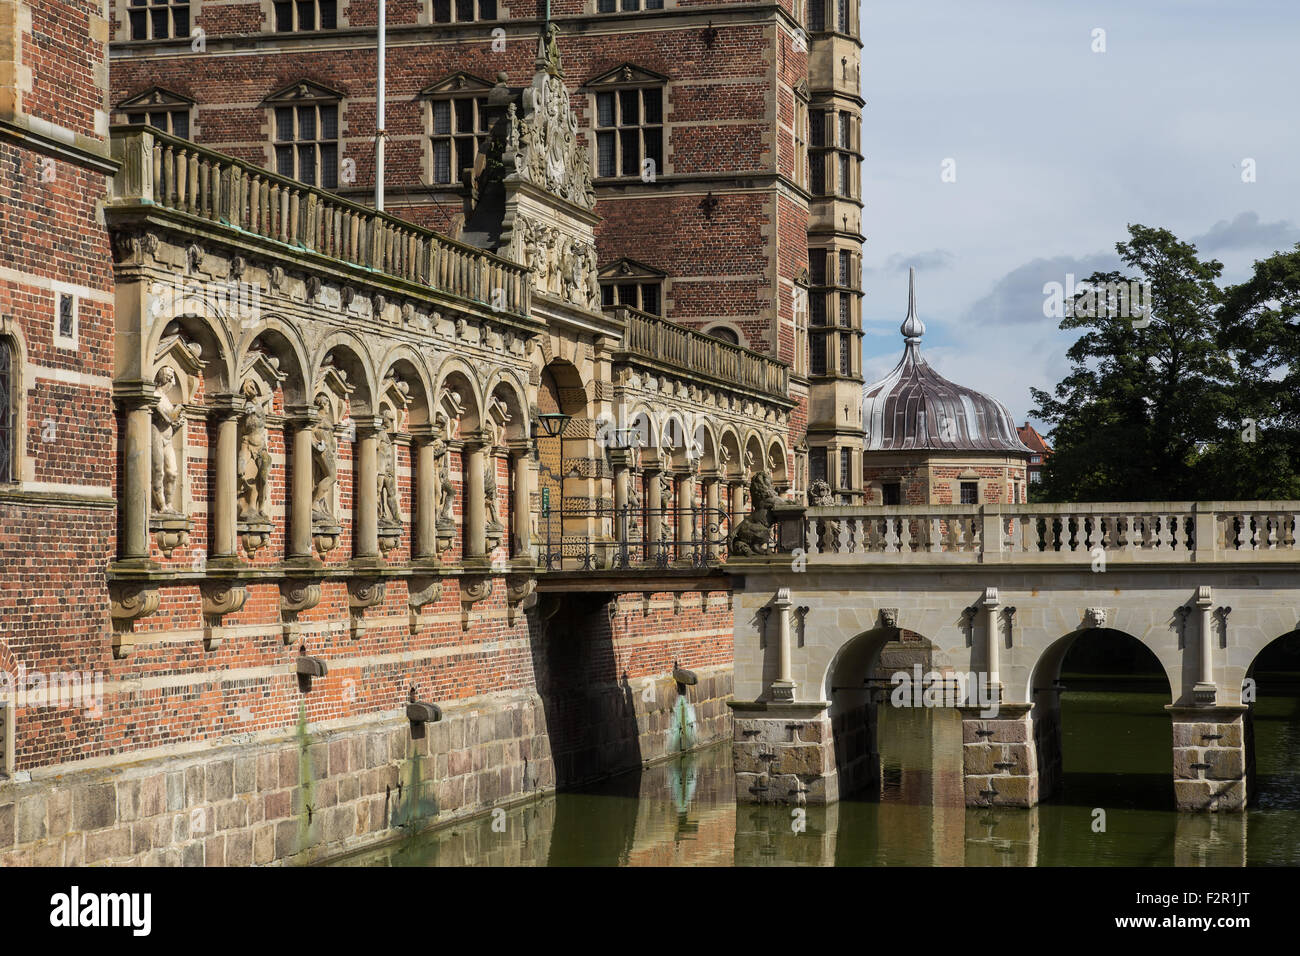 Photograph of the entry to Frederiksborg castle. - Stock Image